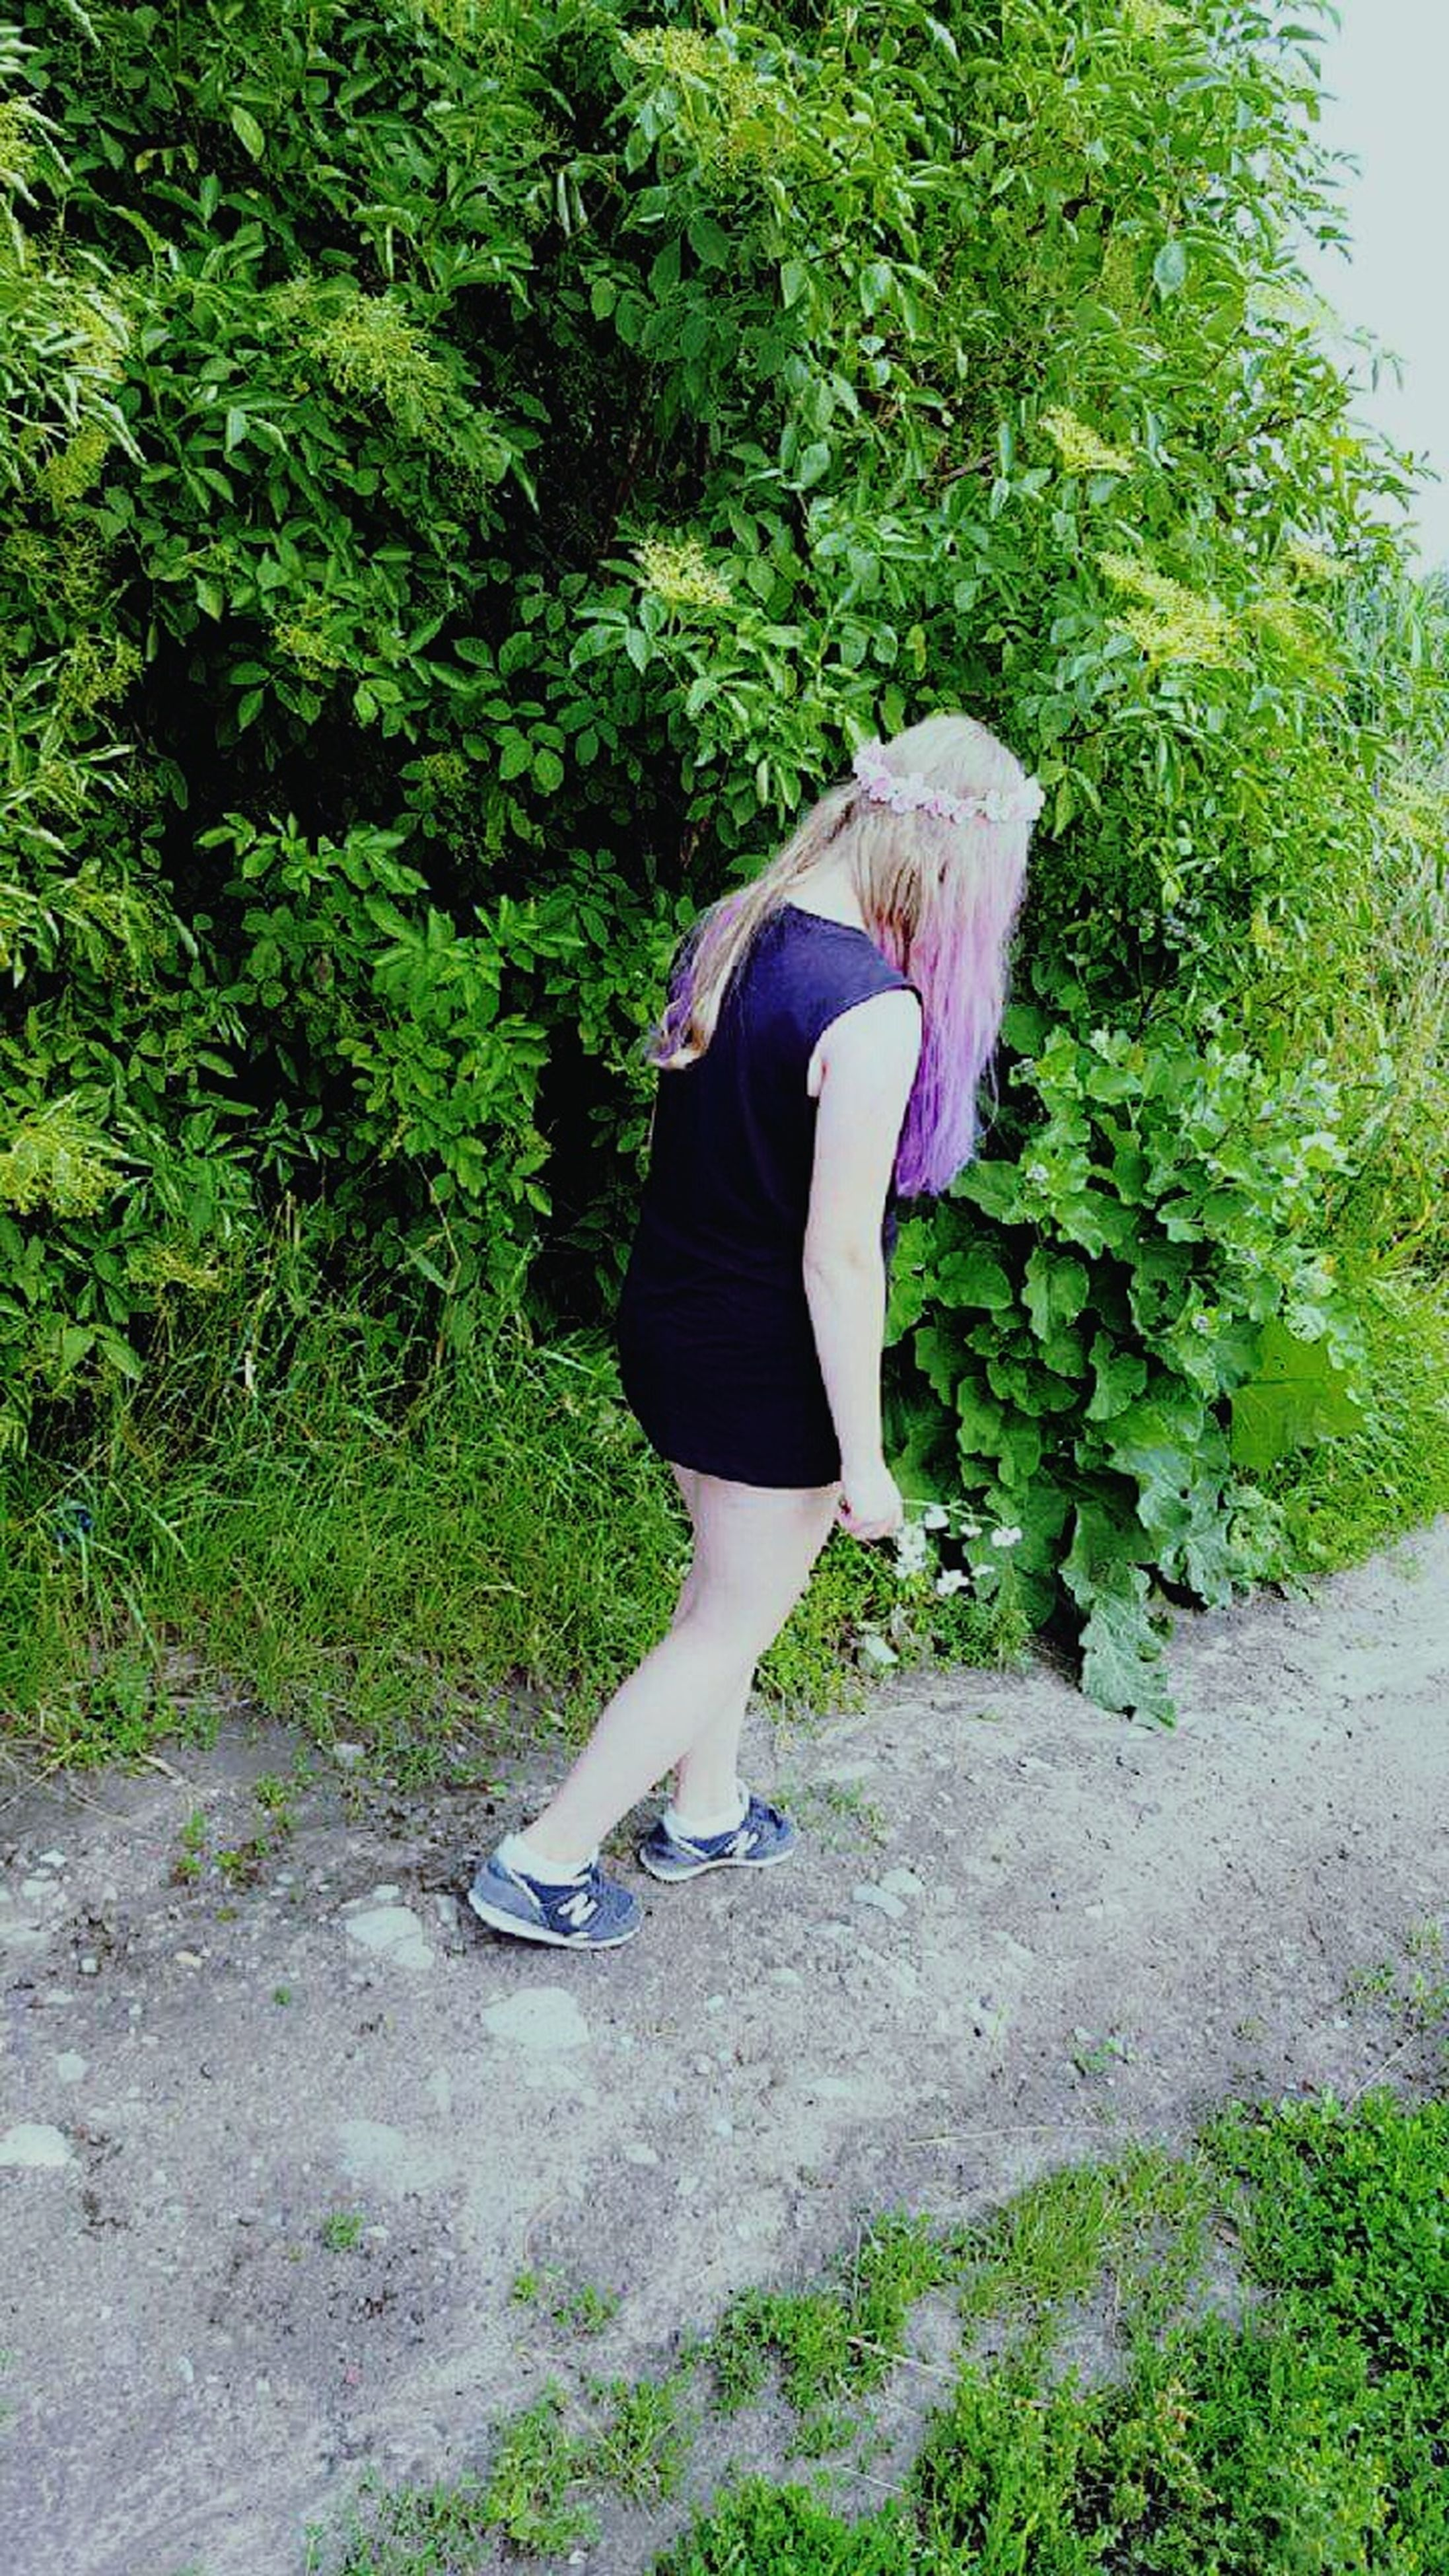 full length, plant, lifestyles, green color, leisure activity, motion, casual clothing, growth, footpath, outdoors, fun, long hair, day, person, young adult, carefree